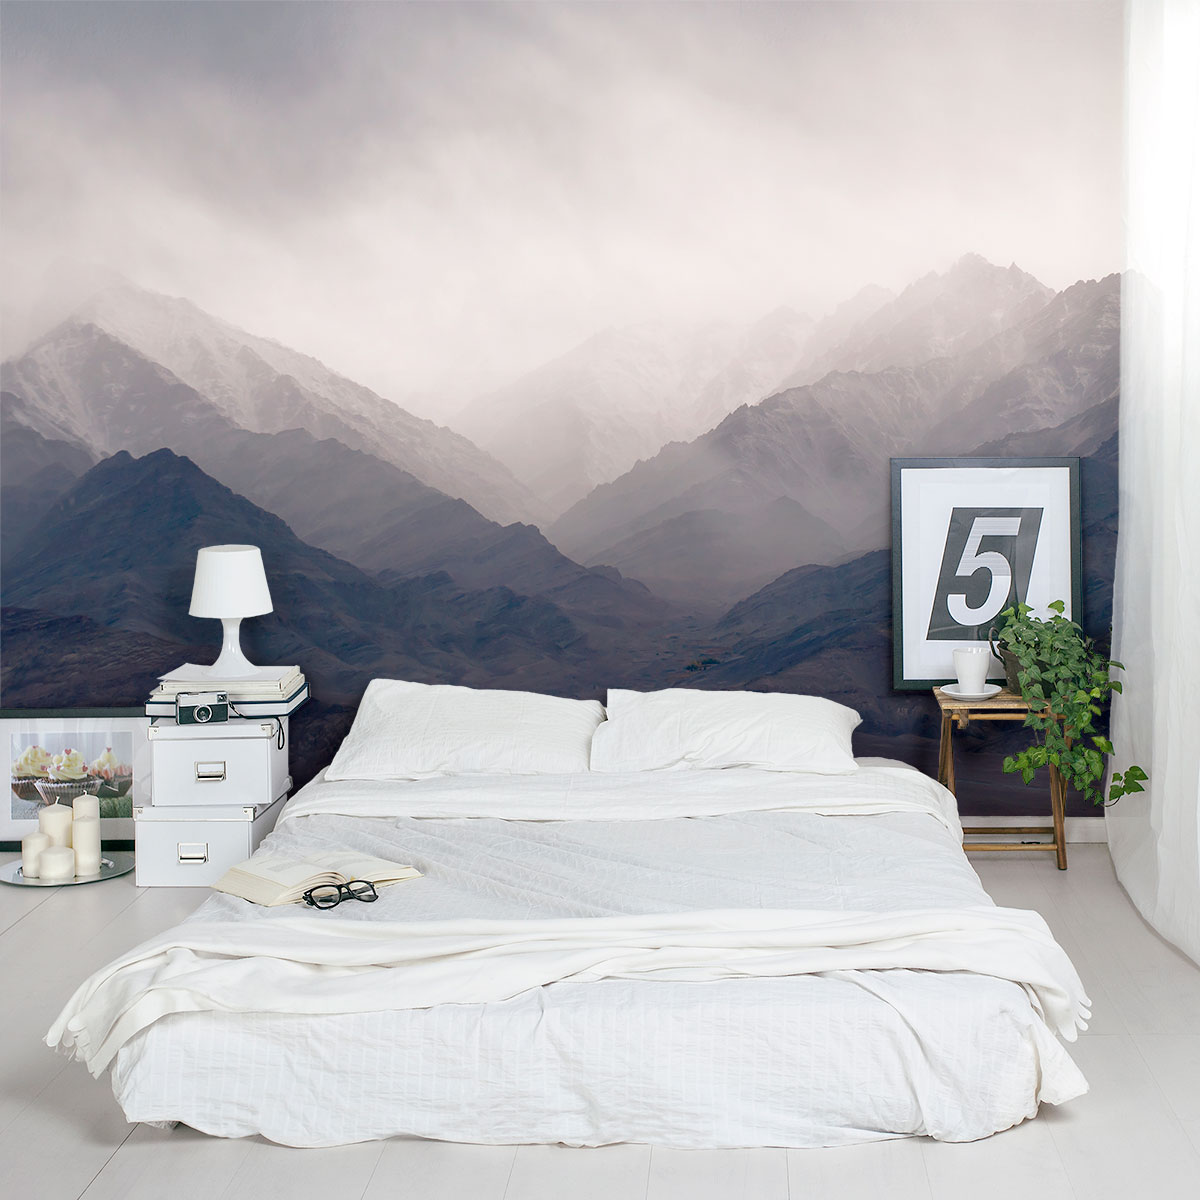 misty mountains wall mural. Black Bedroom Furniture Sets. Home Design Ideas